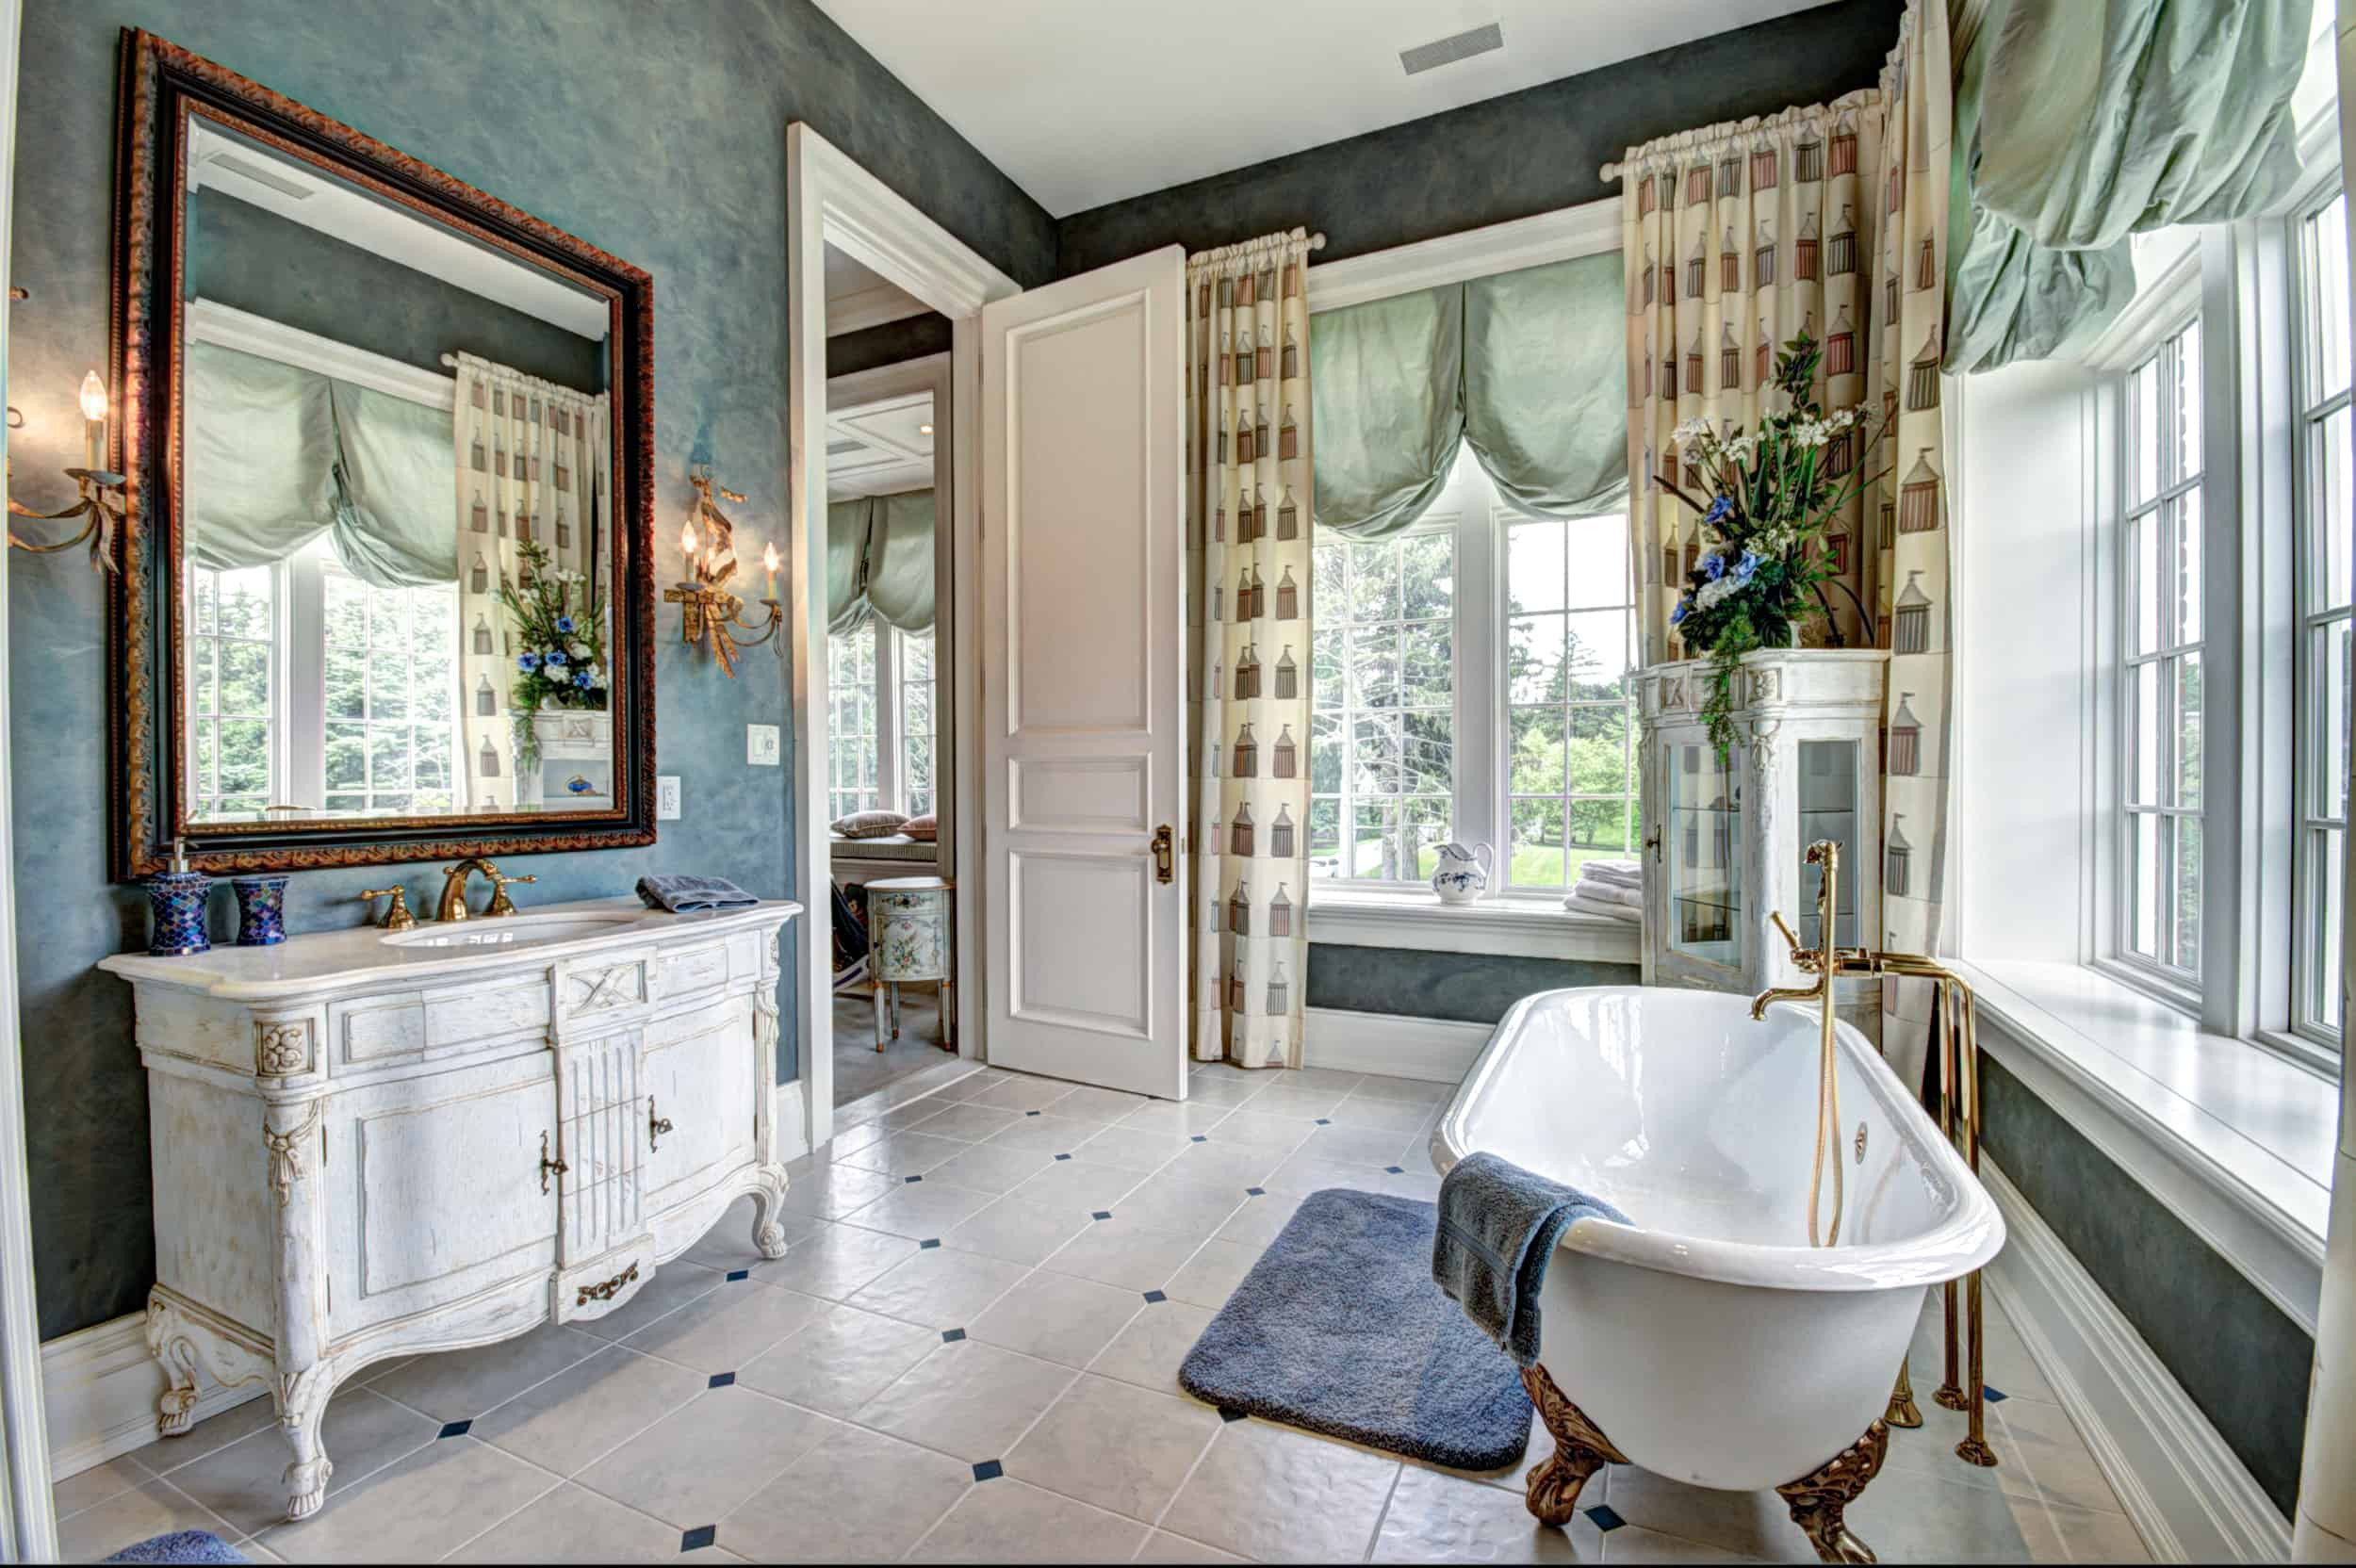 Burlington Bathroom Design